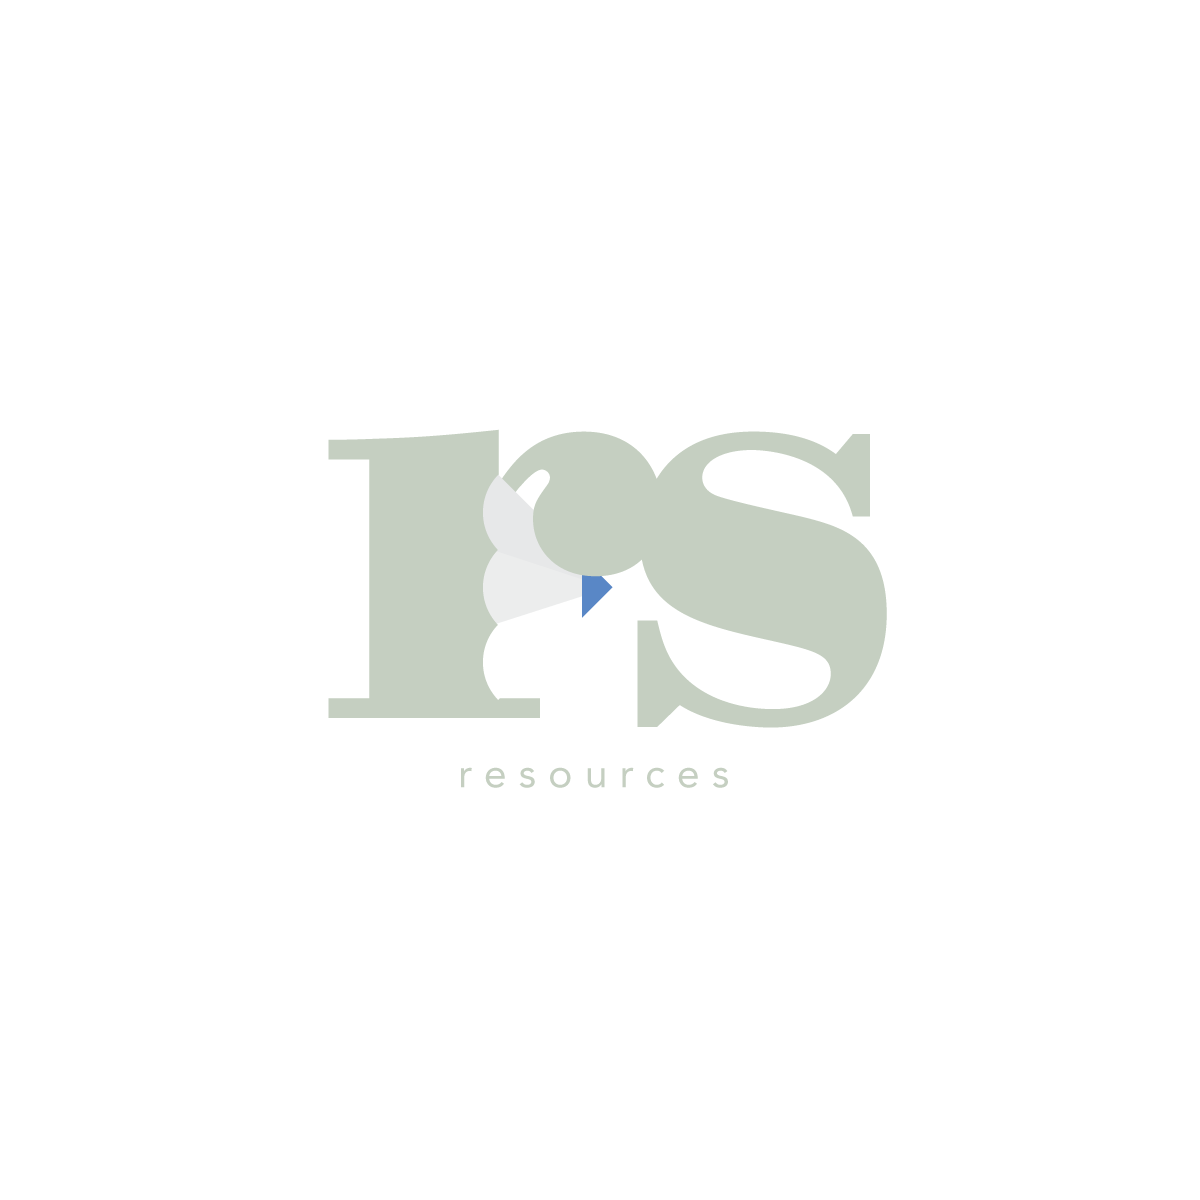 resources icon graphic by Logo Design Co